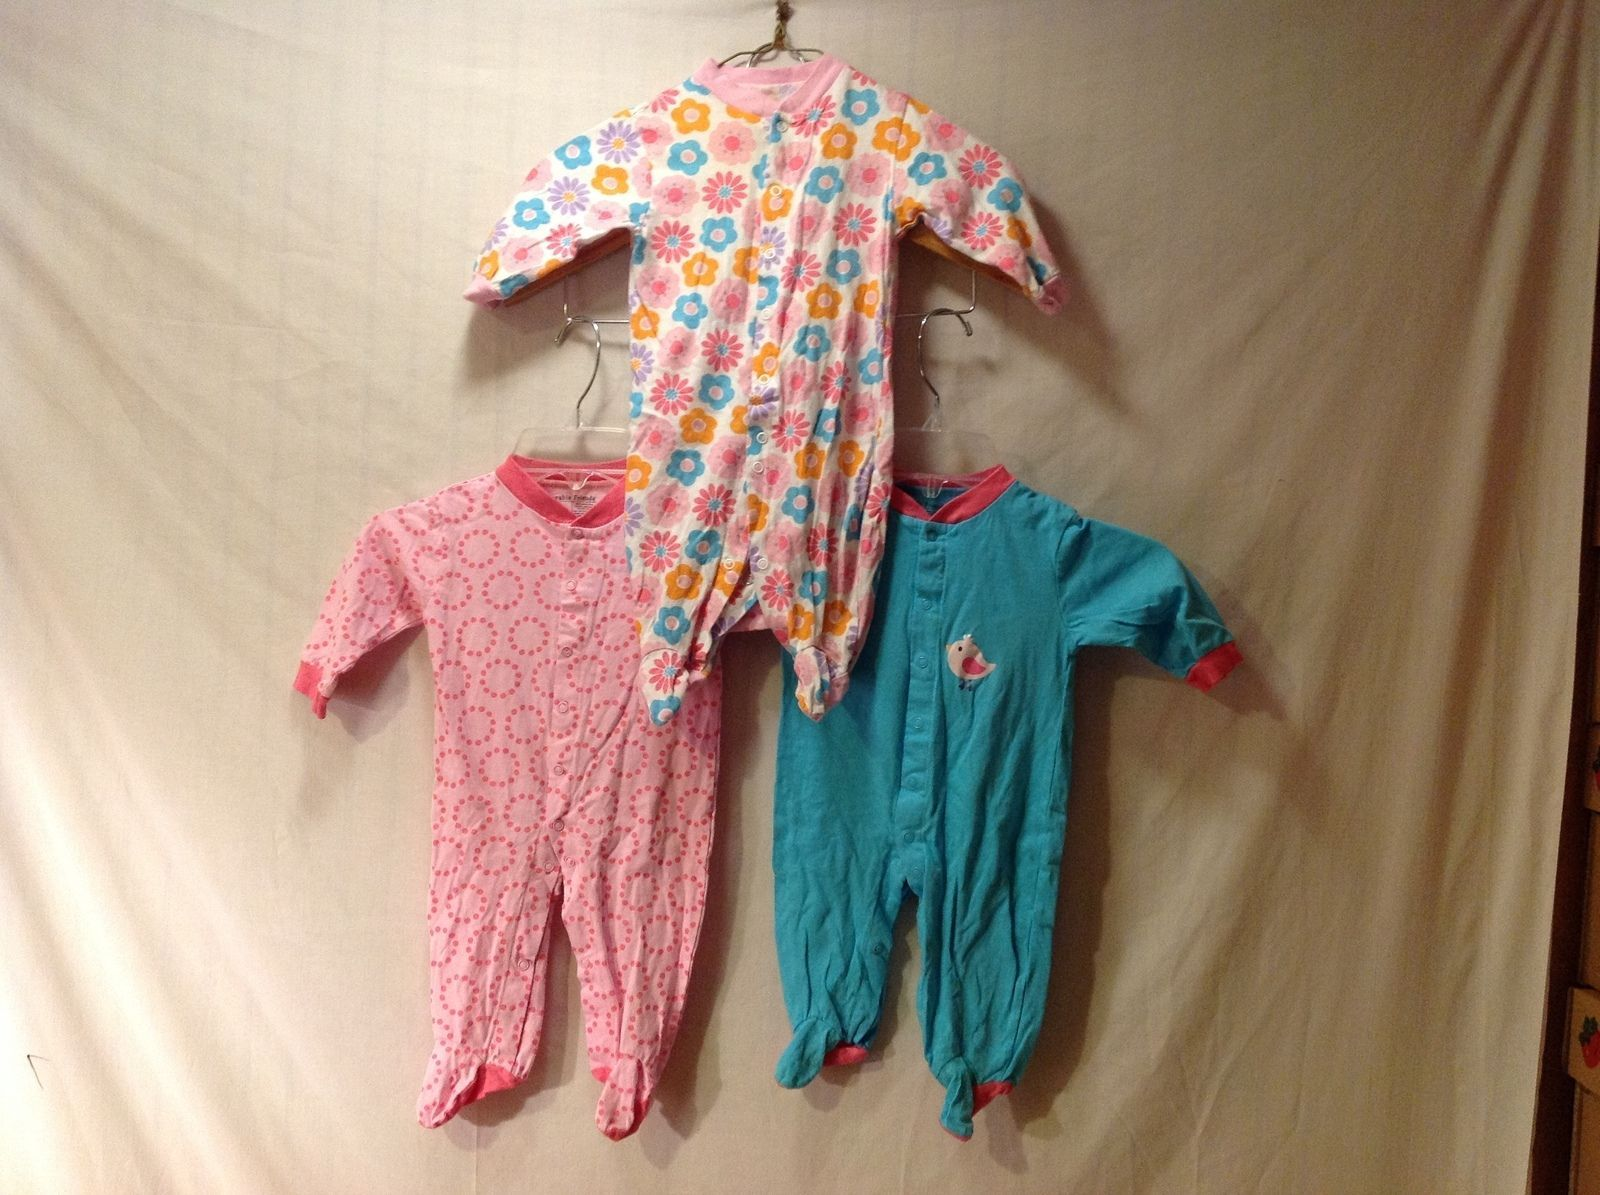 Loveable Friends Baby Feetie Outfits Collection of 3 Size 3-6 Months